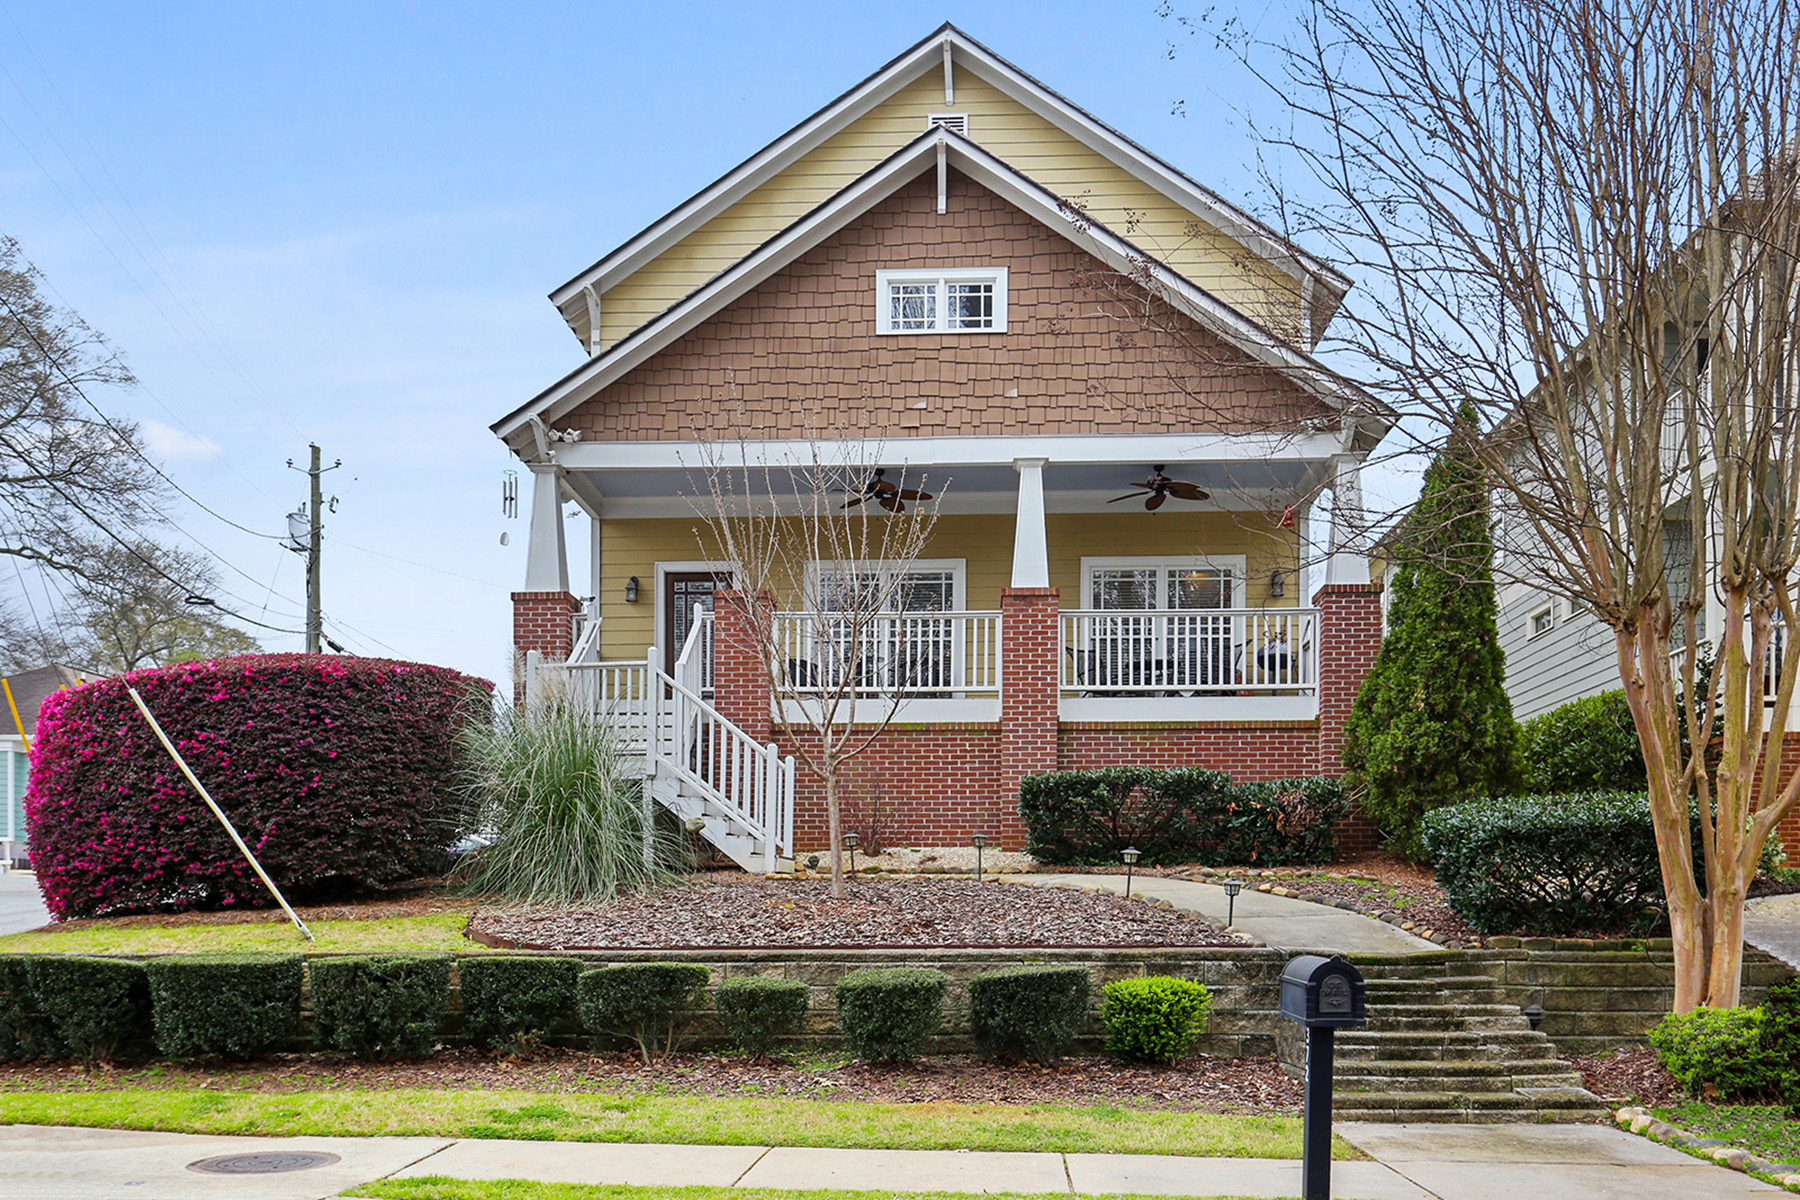 Single Family Homes for Sale at Immaculate Oakhurst Craftsman 372 W Benson Street Decatur, Georgia 30030 United States